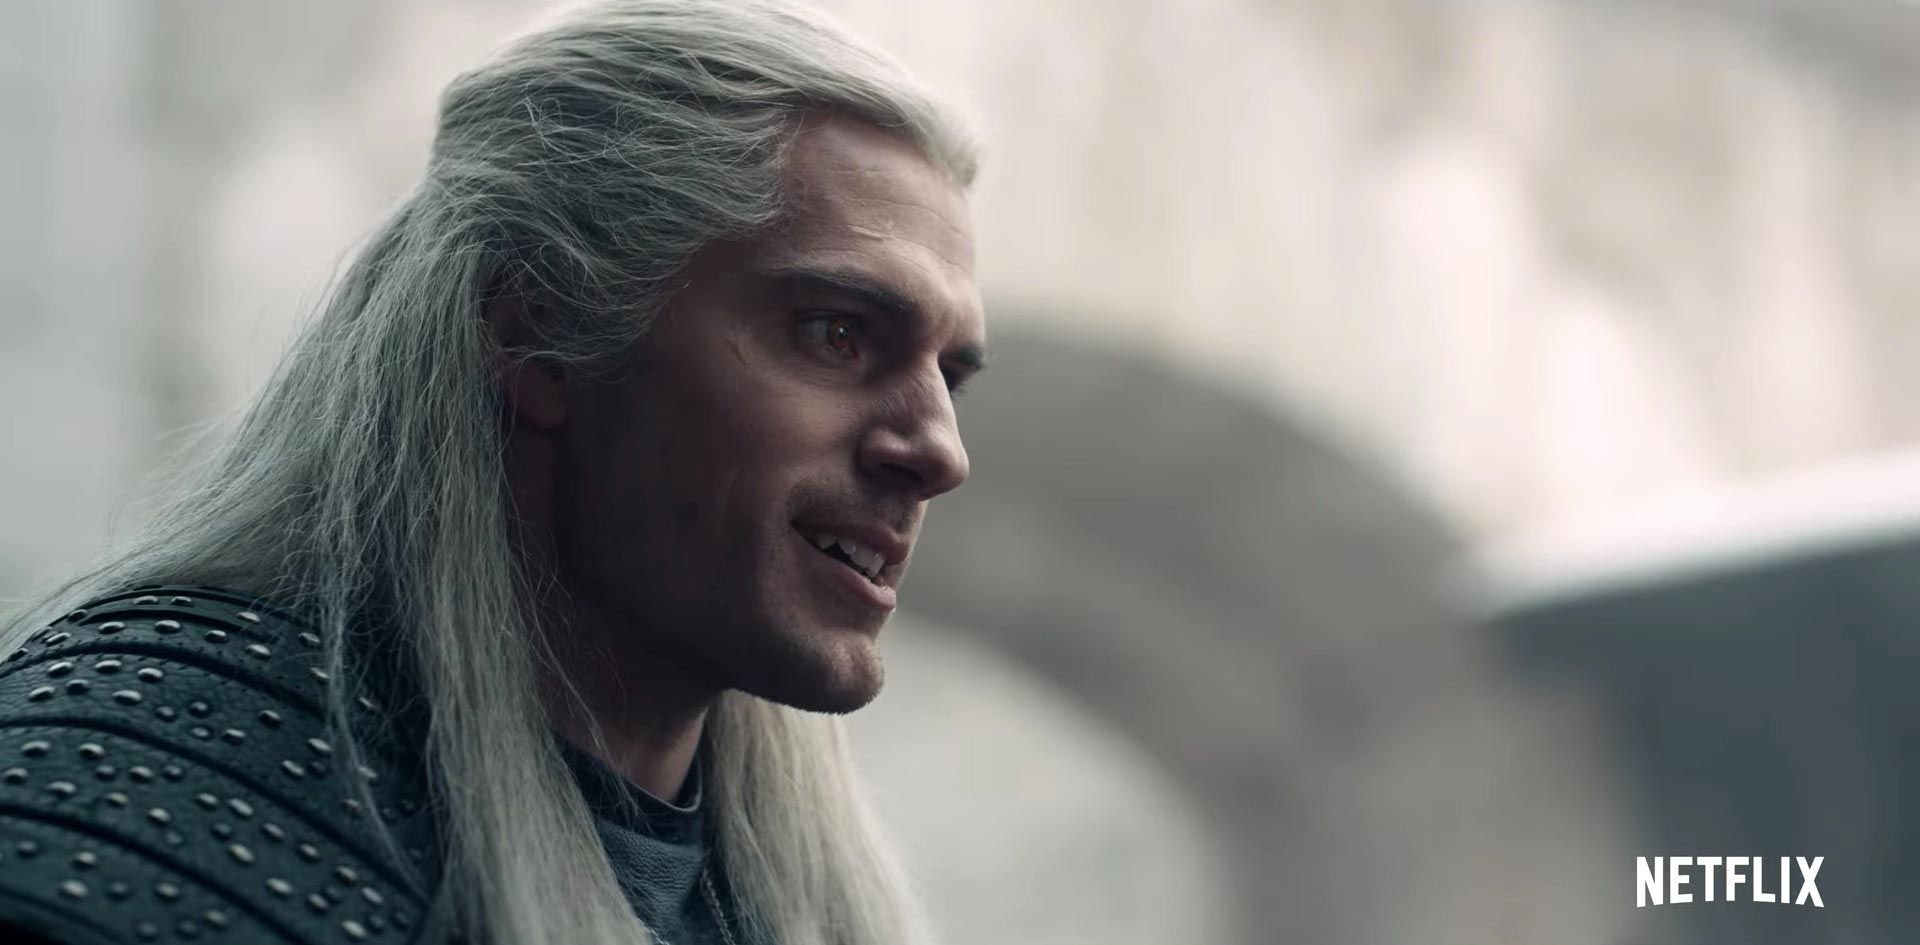 'The Witcher' Boss Explains the Extra Lengths Henry Cavill Went to for Geralt Role